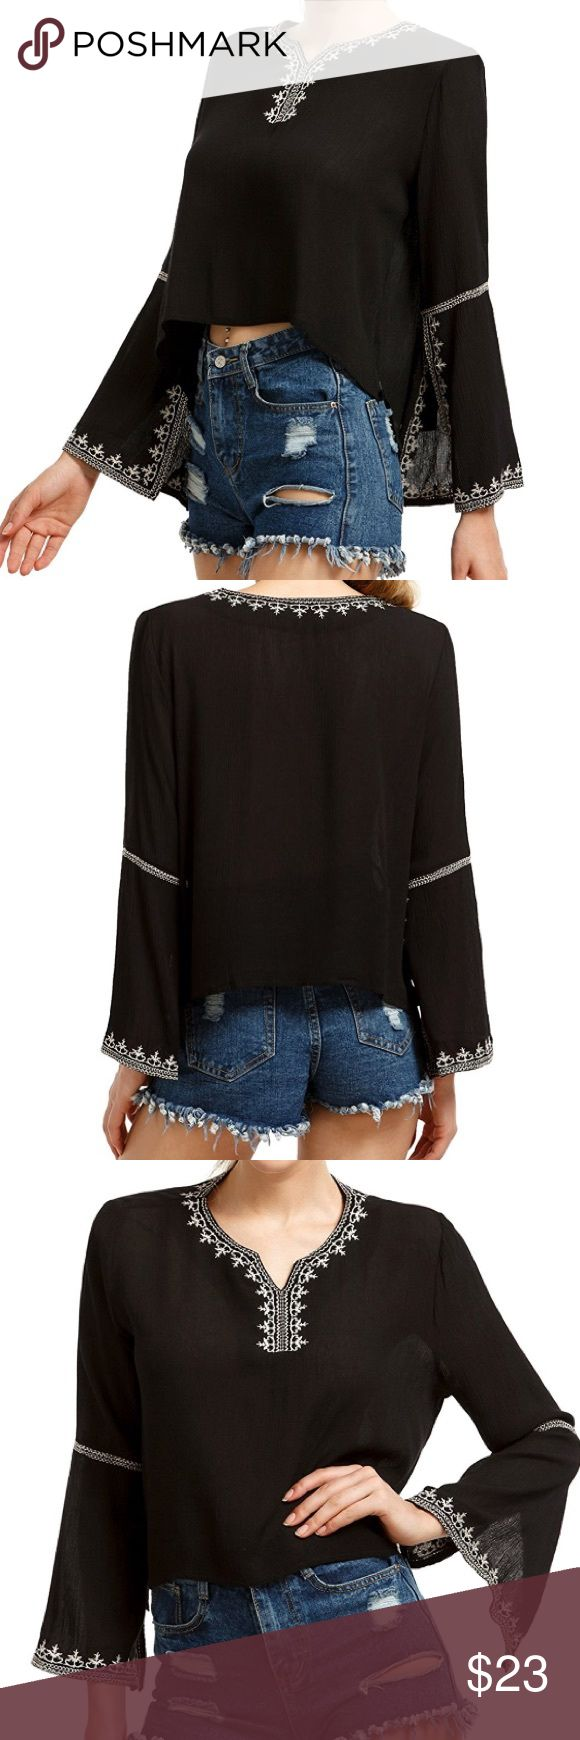 🆕Embroidered Boho Bell Sleeve Top Black Embroidered Trumpet Sleeve Top - Not quite a Crop Top but it is shorter in front ✌🏼                                  ✨Anthropologie inspired✨              ✖️PRICE IS FIRM BUT I ACCEPT OFFERS ON BUNDLES✖️                                     ✖️NO TRADES PLEASE✖️ Anthropologie Tops Blouses